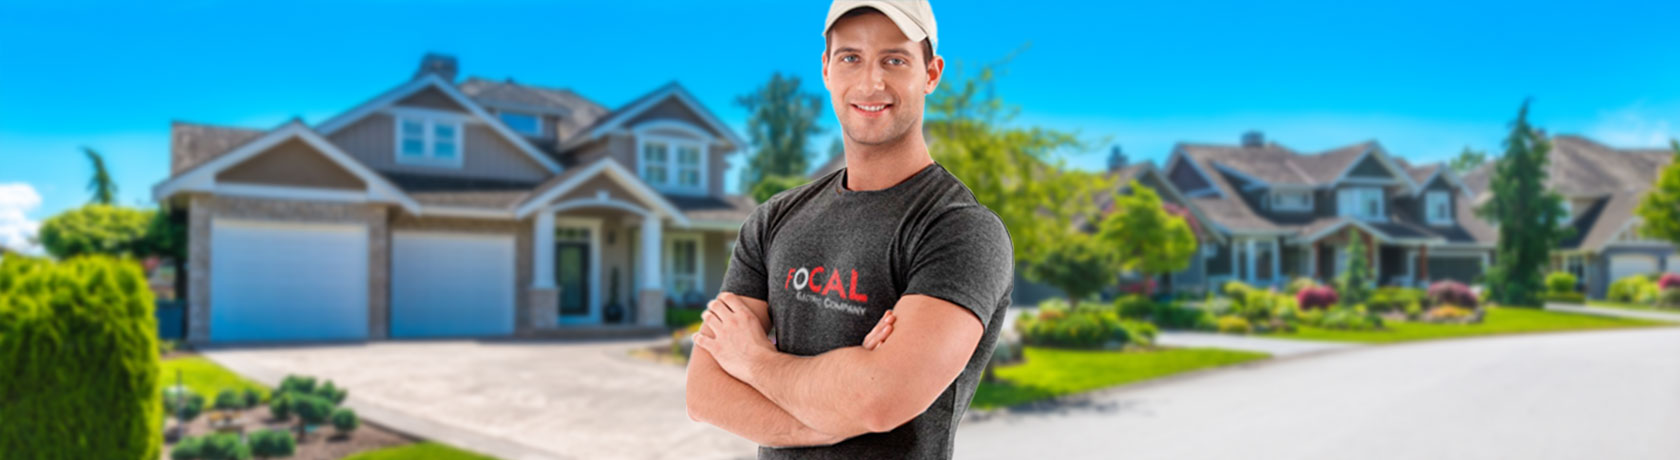 rockwall electrical services